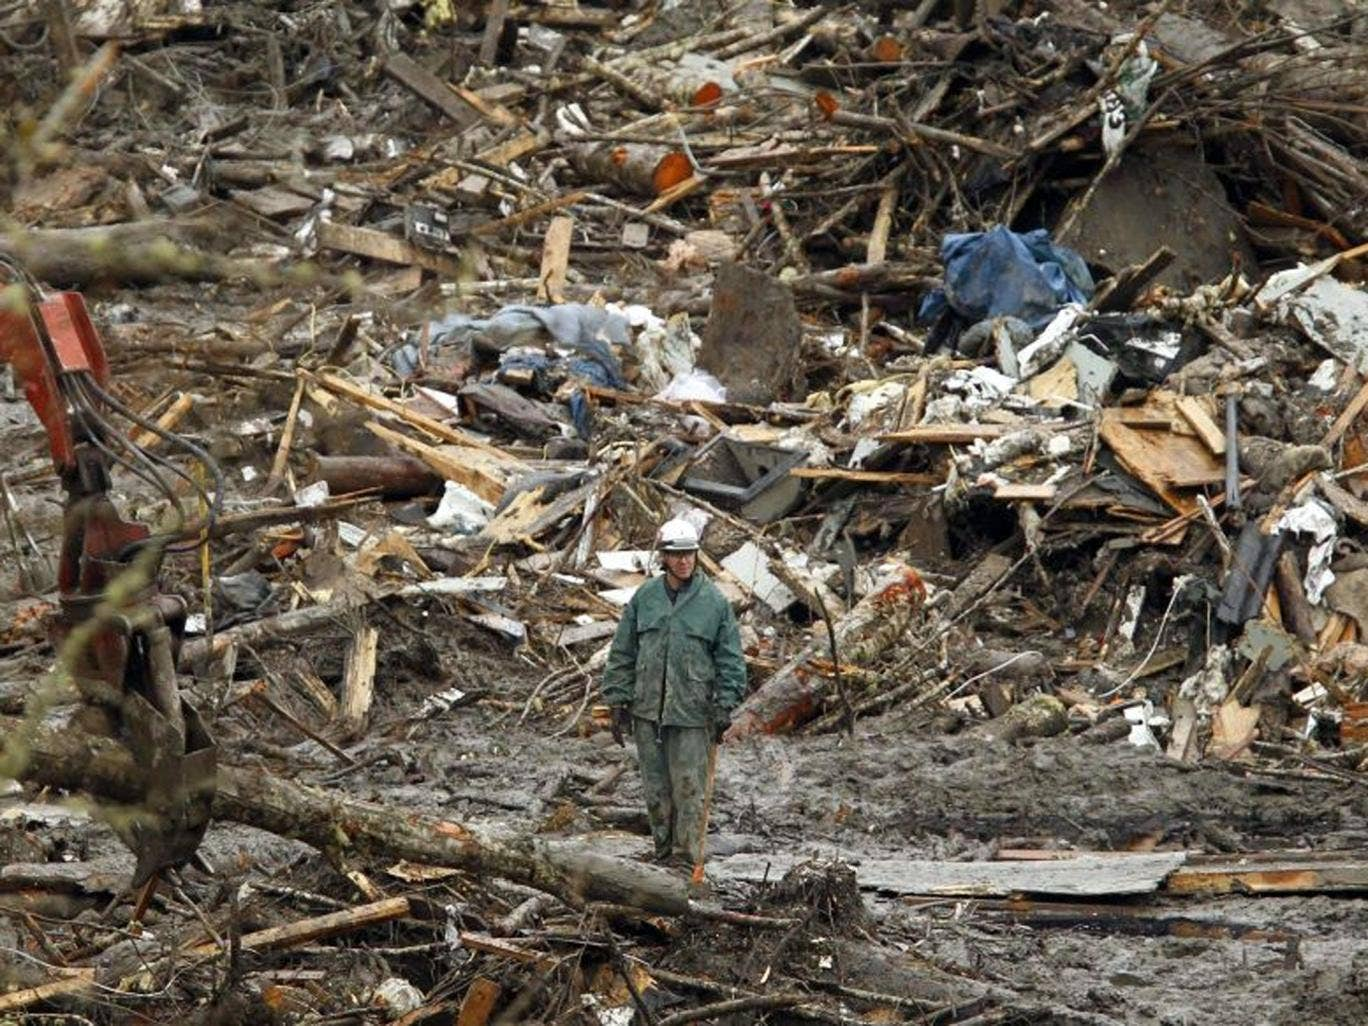 A rescue worker looks over the debris pile from the mudslide in Oso, Washington March 27, 2014. The death toll from a massive Washington state mudslide is expected to climb sharply over the next two days with 90 people still missing, authorities said on T